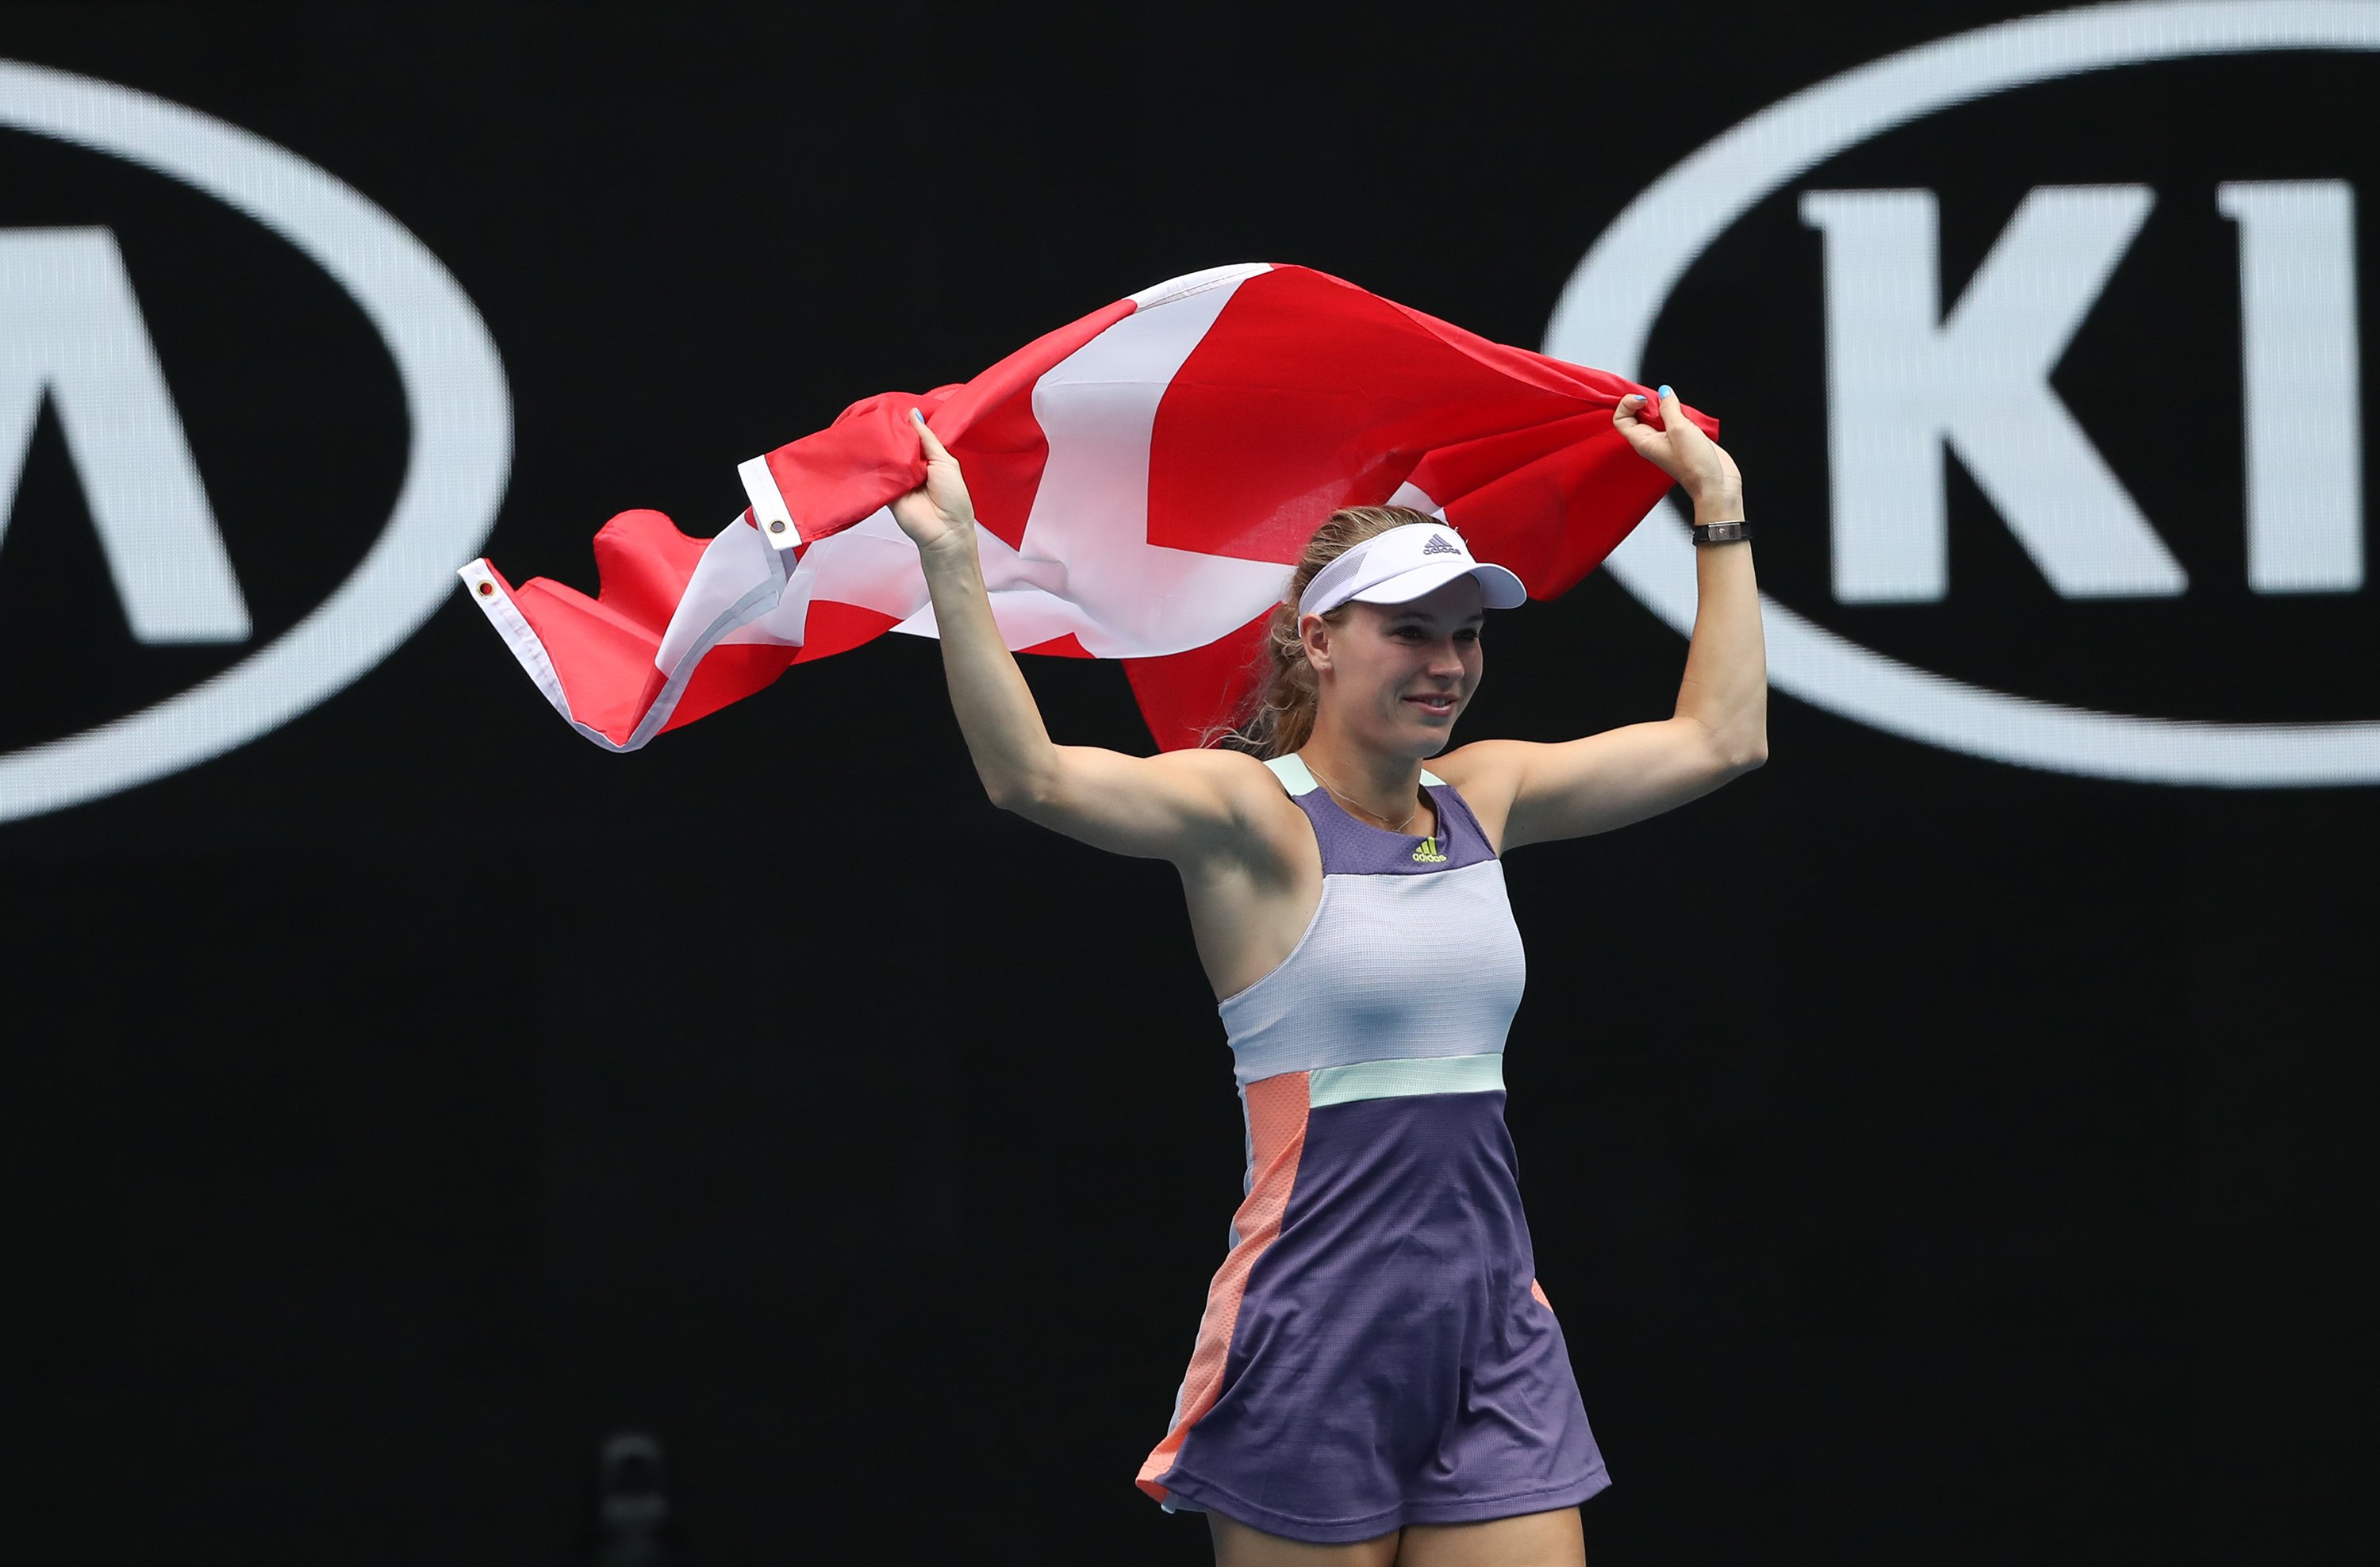 Caroline Wozniacki: more than just a tennis player. A look at the life of the retiring champion